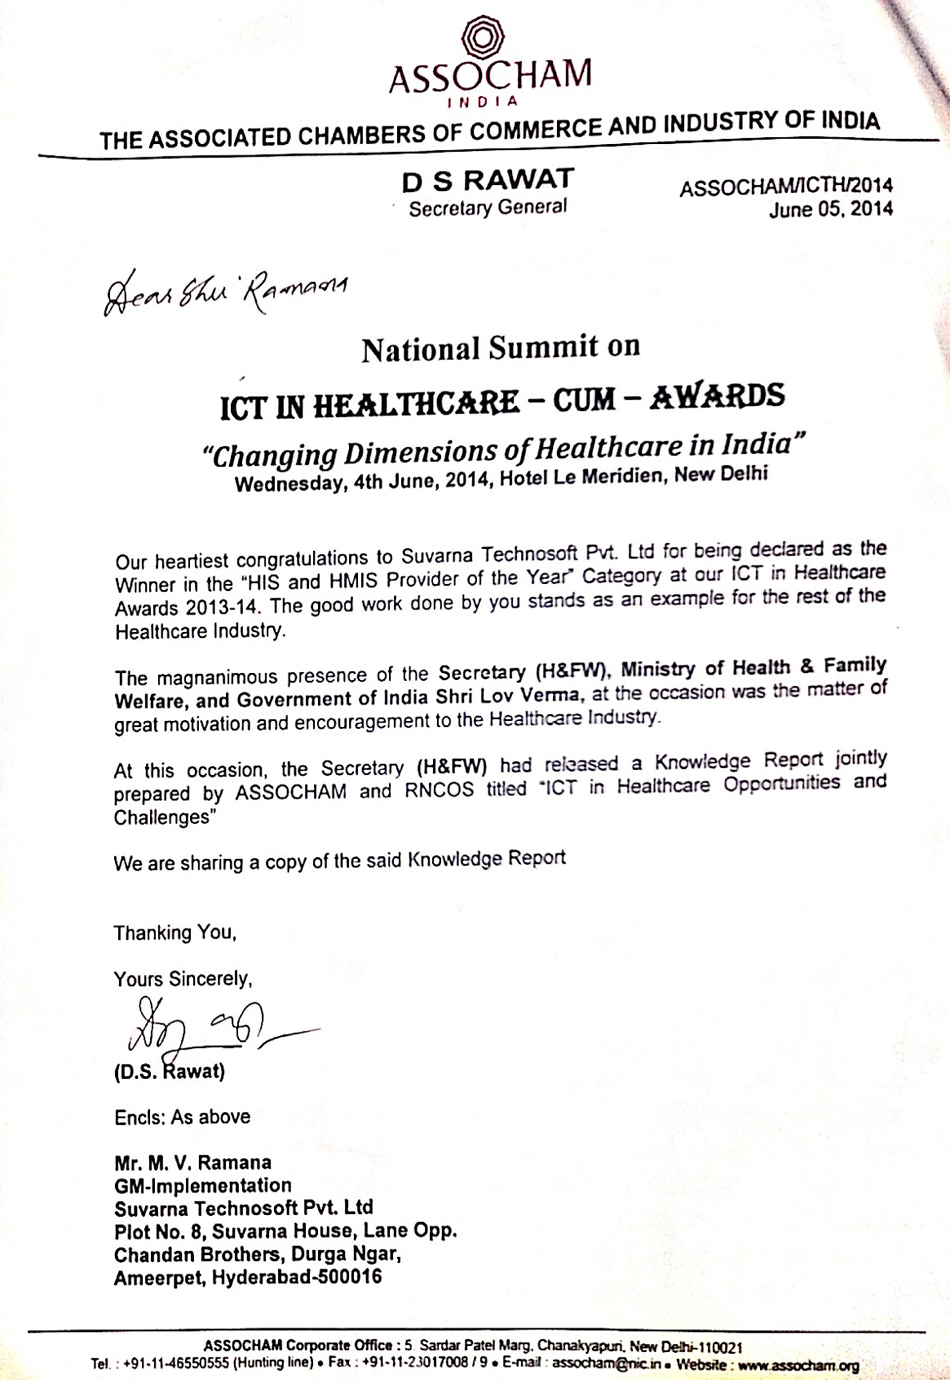 National Summit on ICT in Healthcare cum Awards